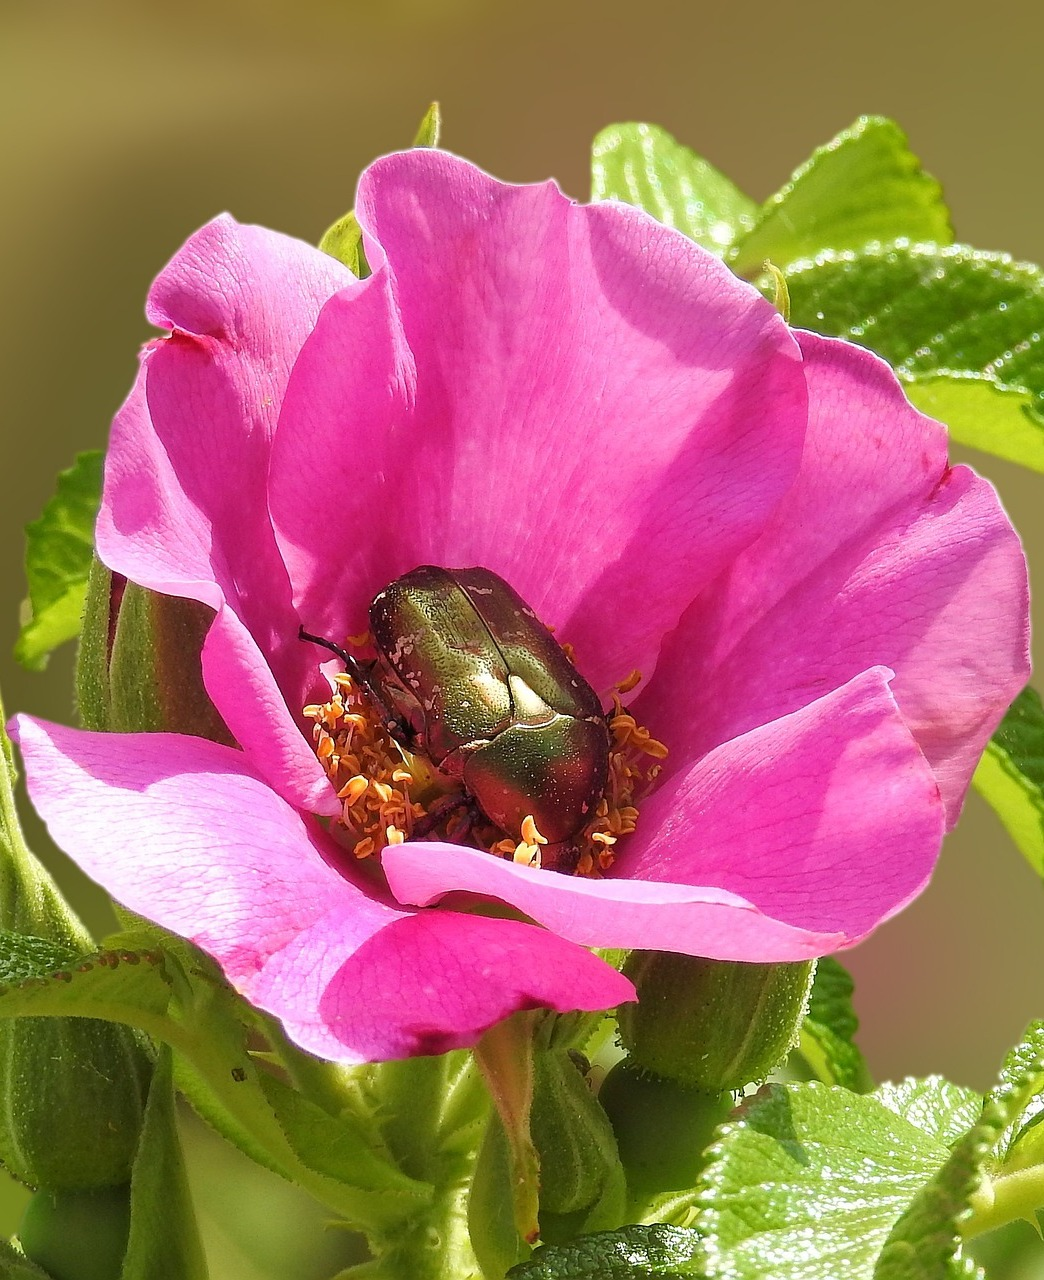 Picture of a rose beetle.